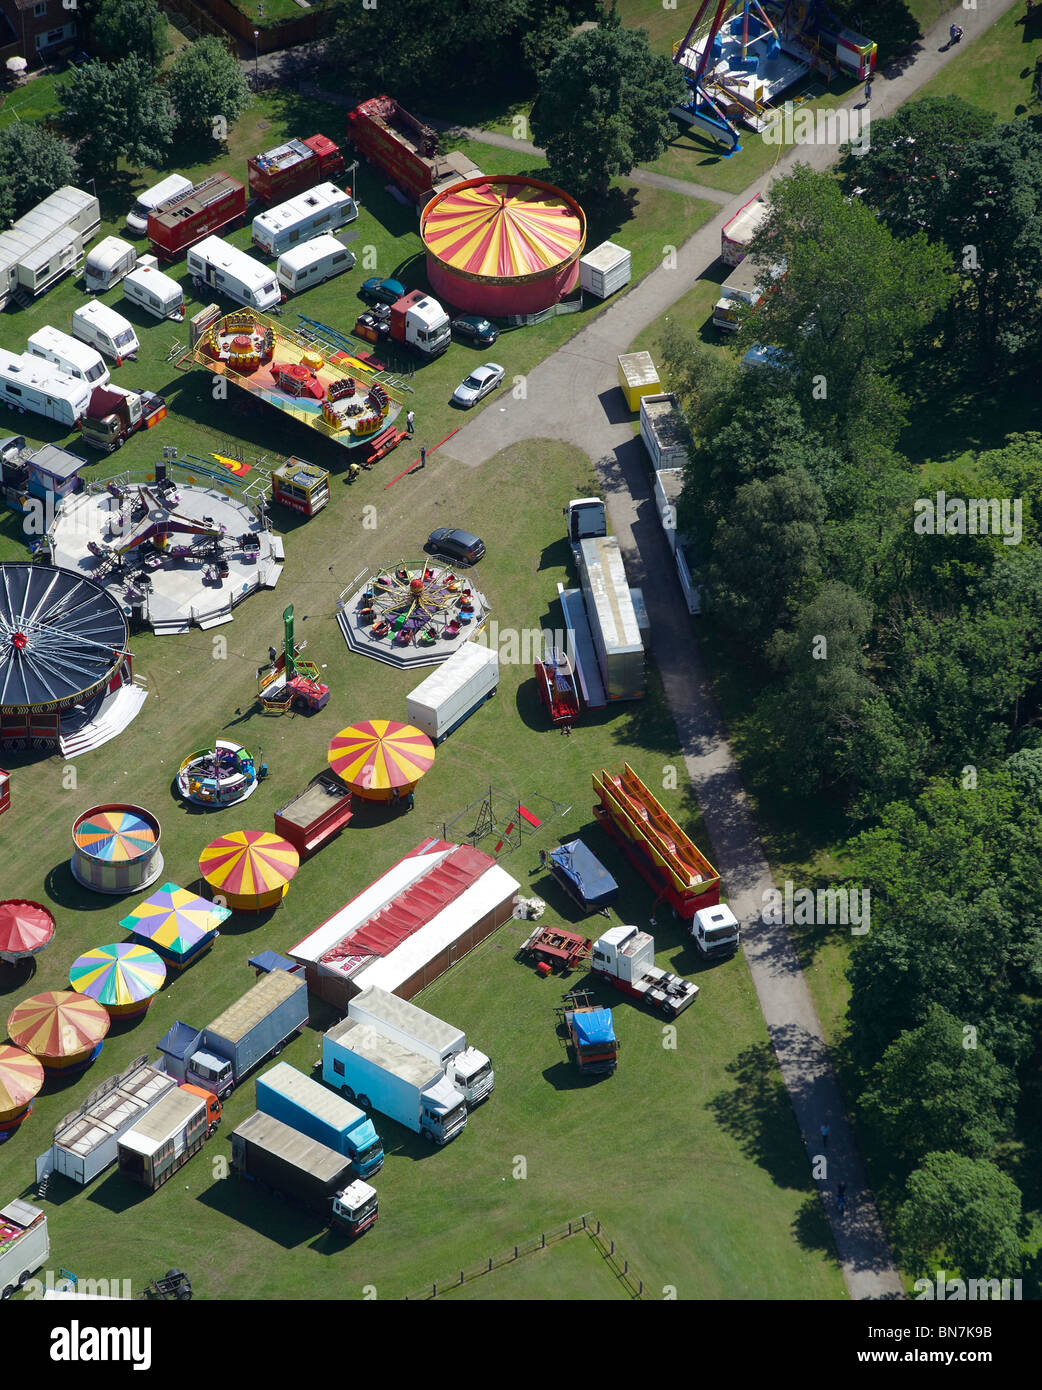 Travelling Fairground, County Durham, Northern England - Stock Image